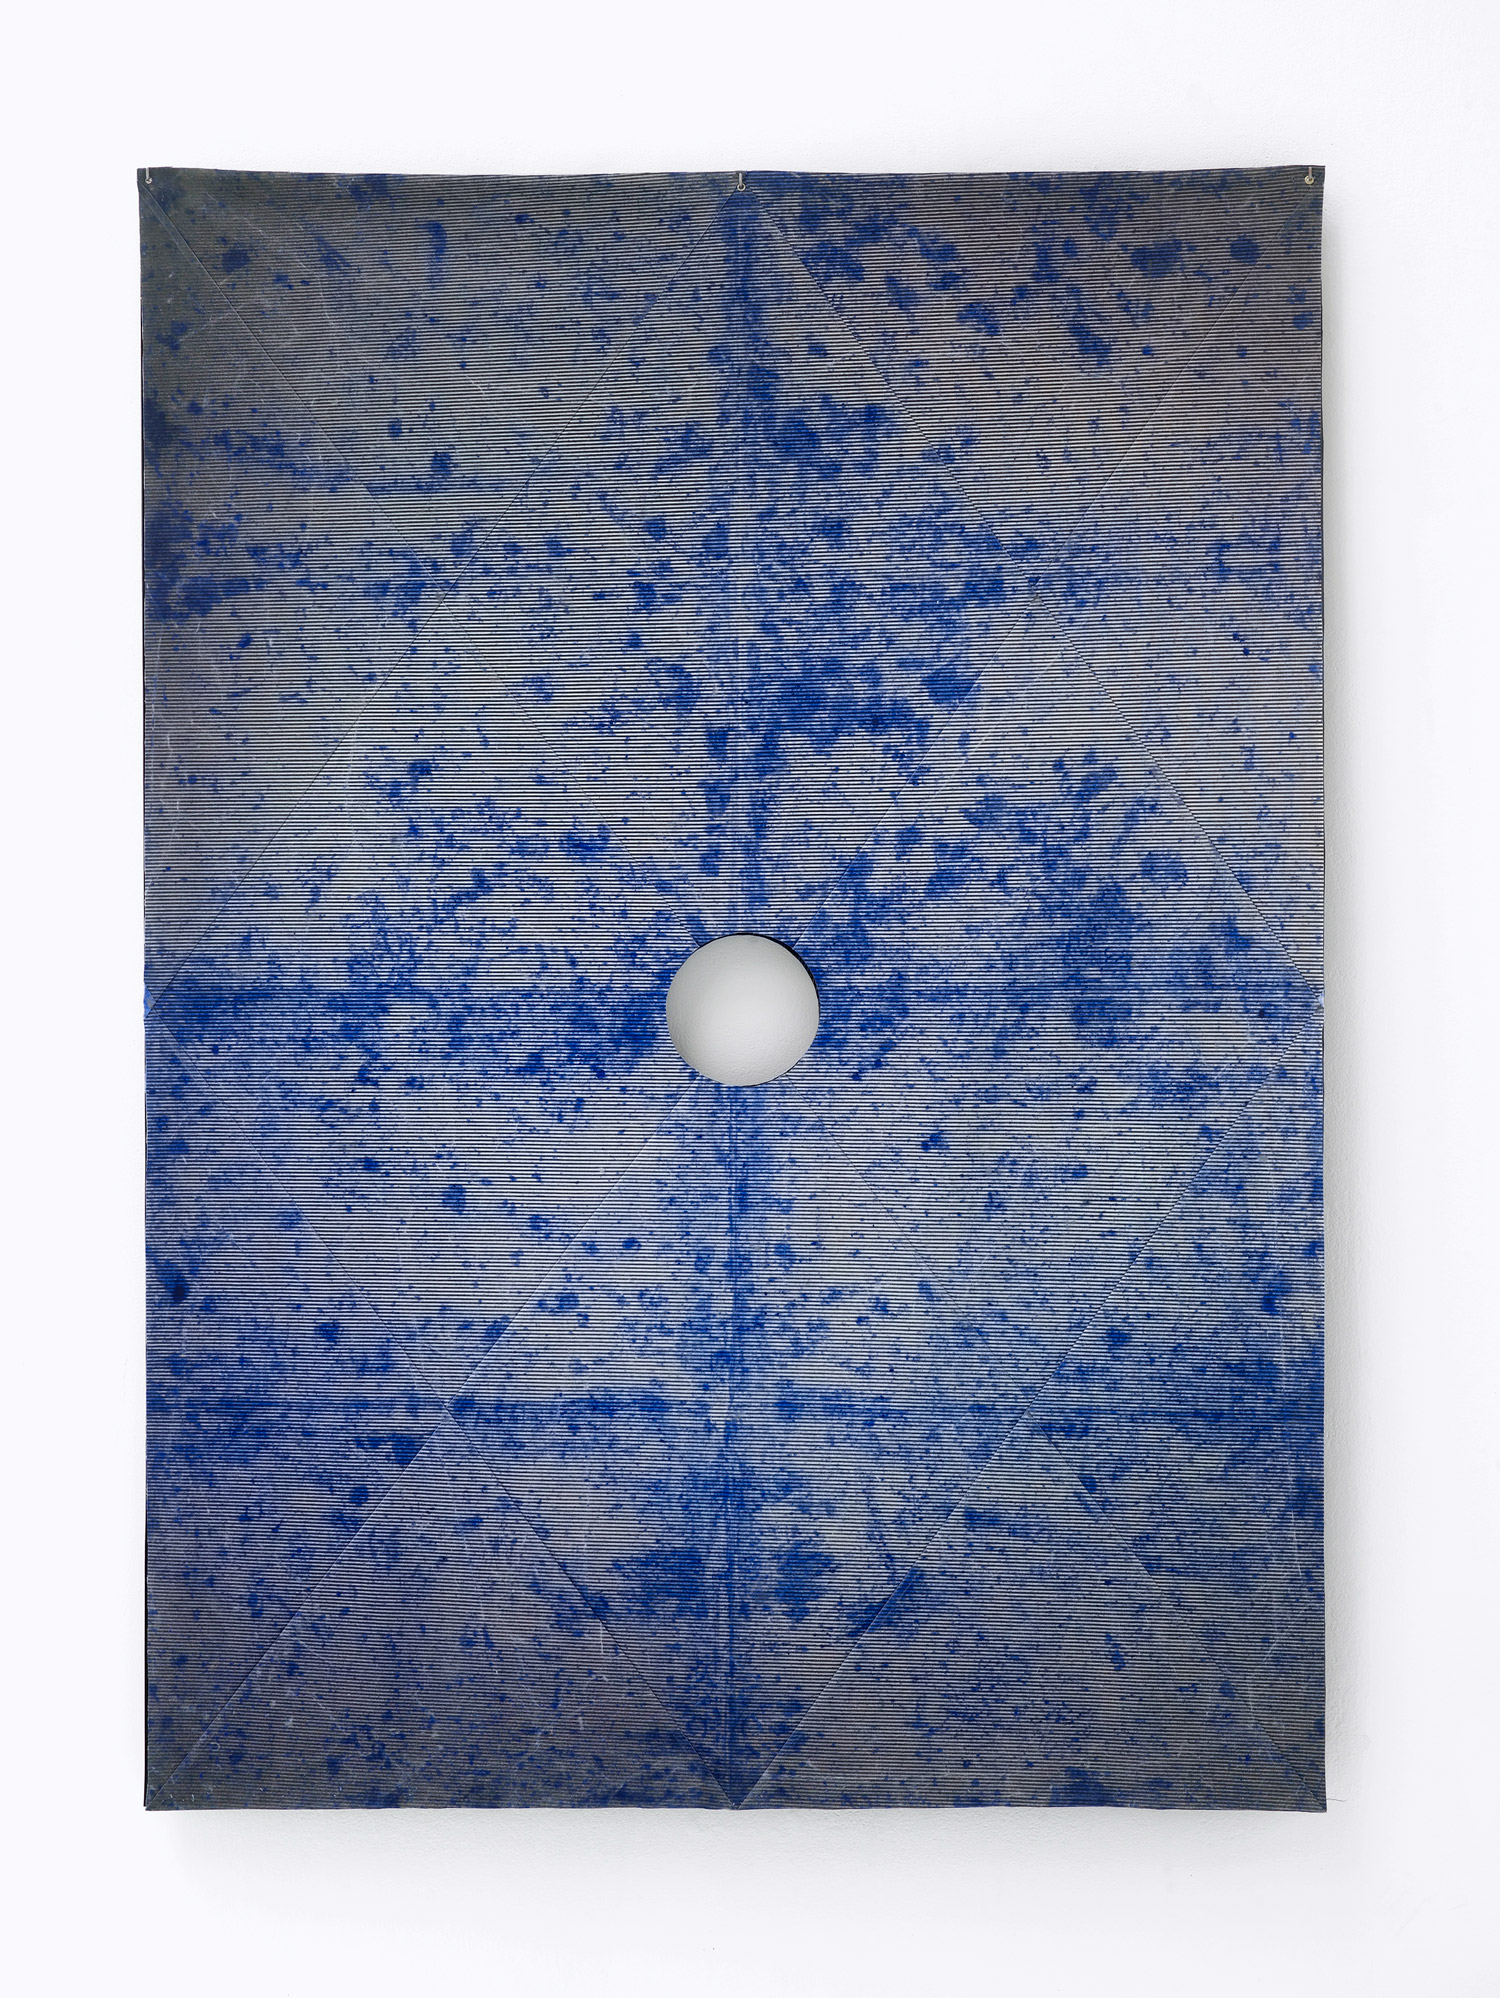 Wellstone - concrete, powder pigment, 105.5 x 64.5 x 5 cm, 2016